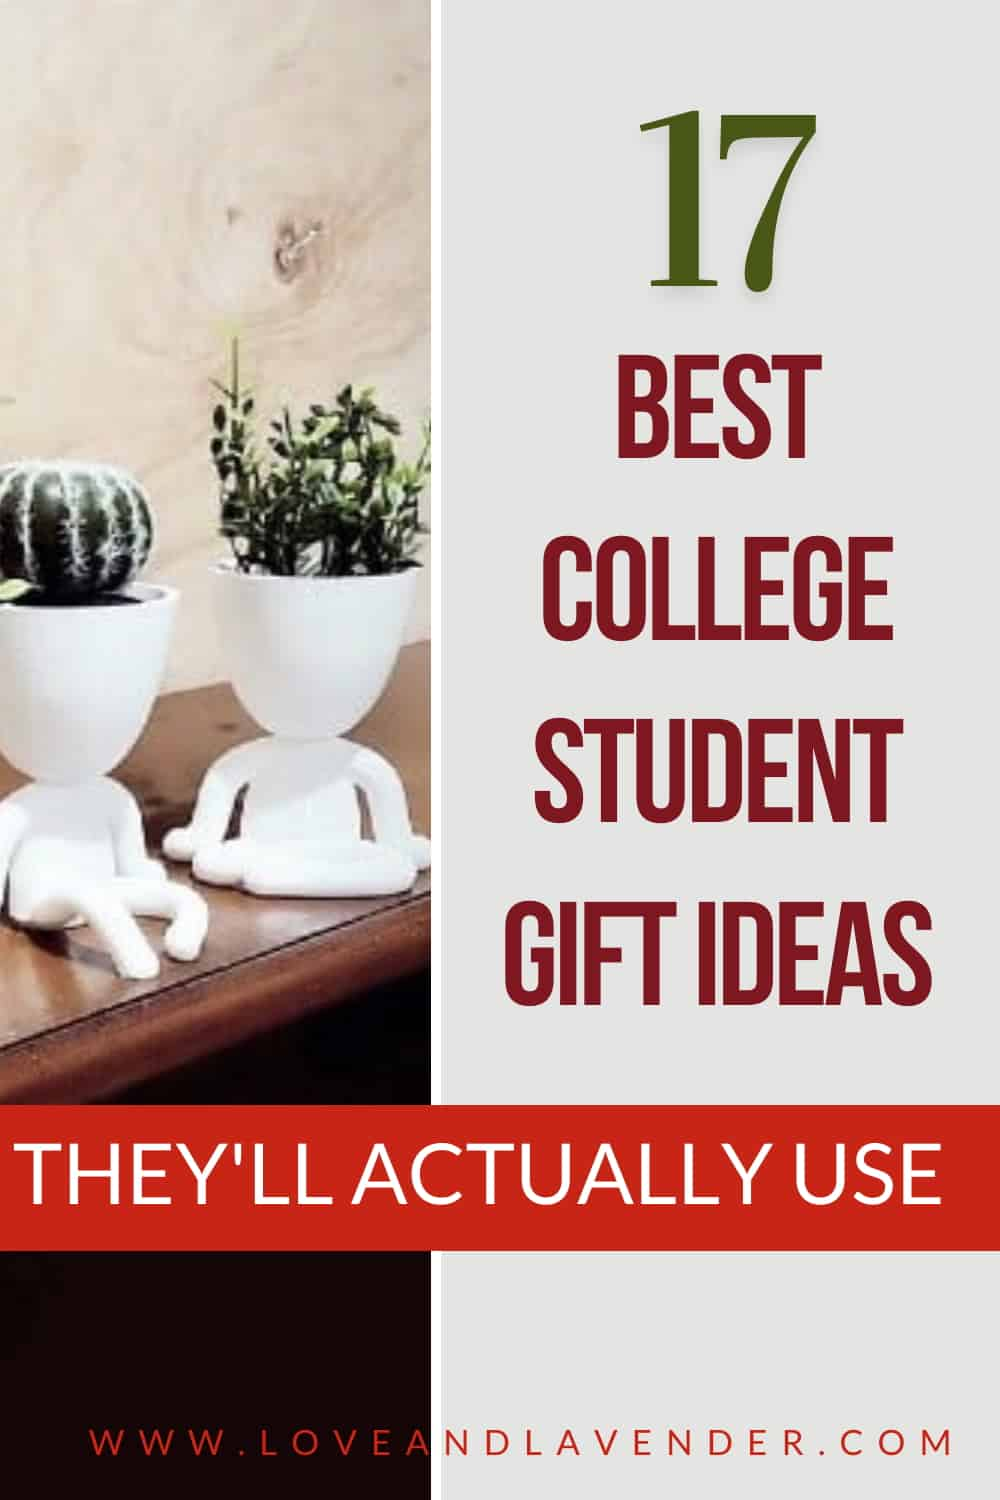 Pinterest Pin - College Student Gift Ideas